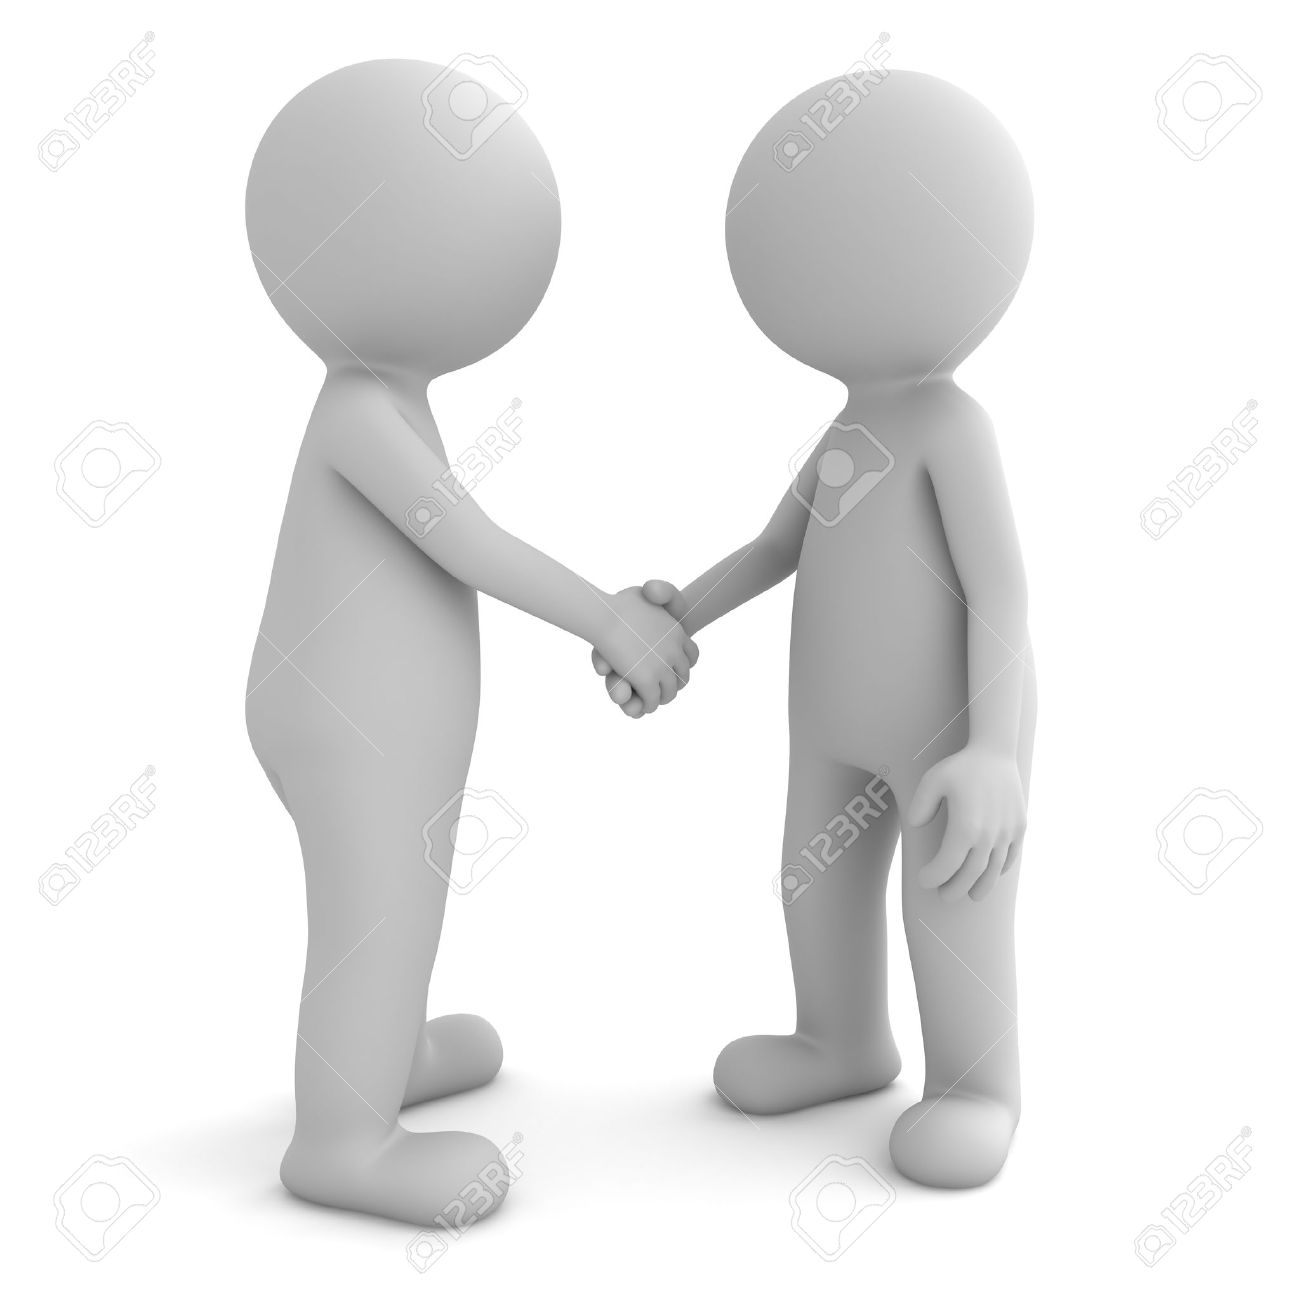 3d people shaking hands isolated on white background Stock Photo - 23800228